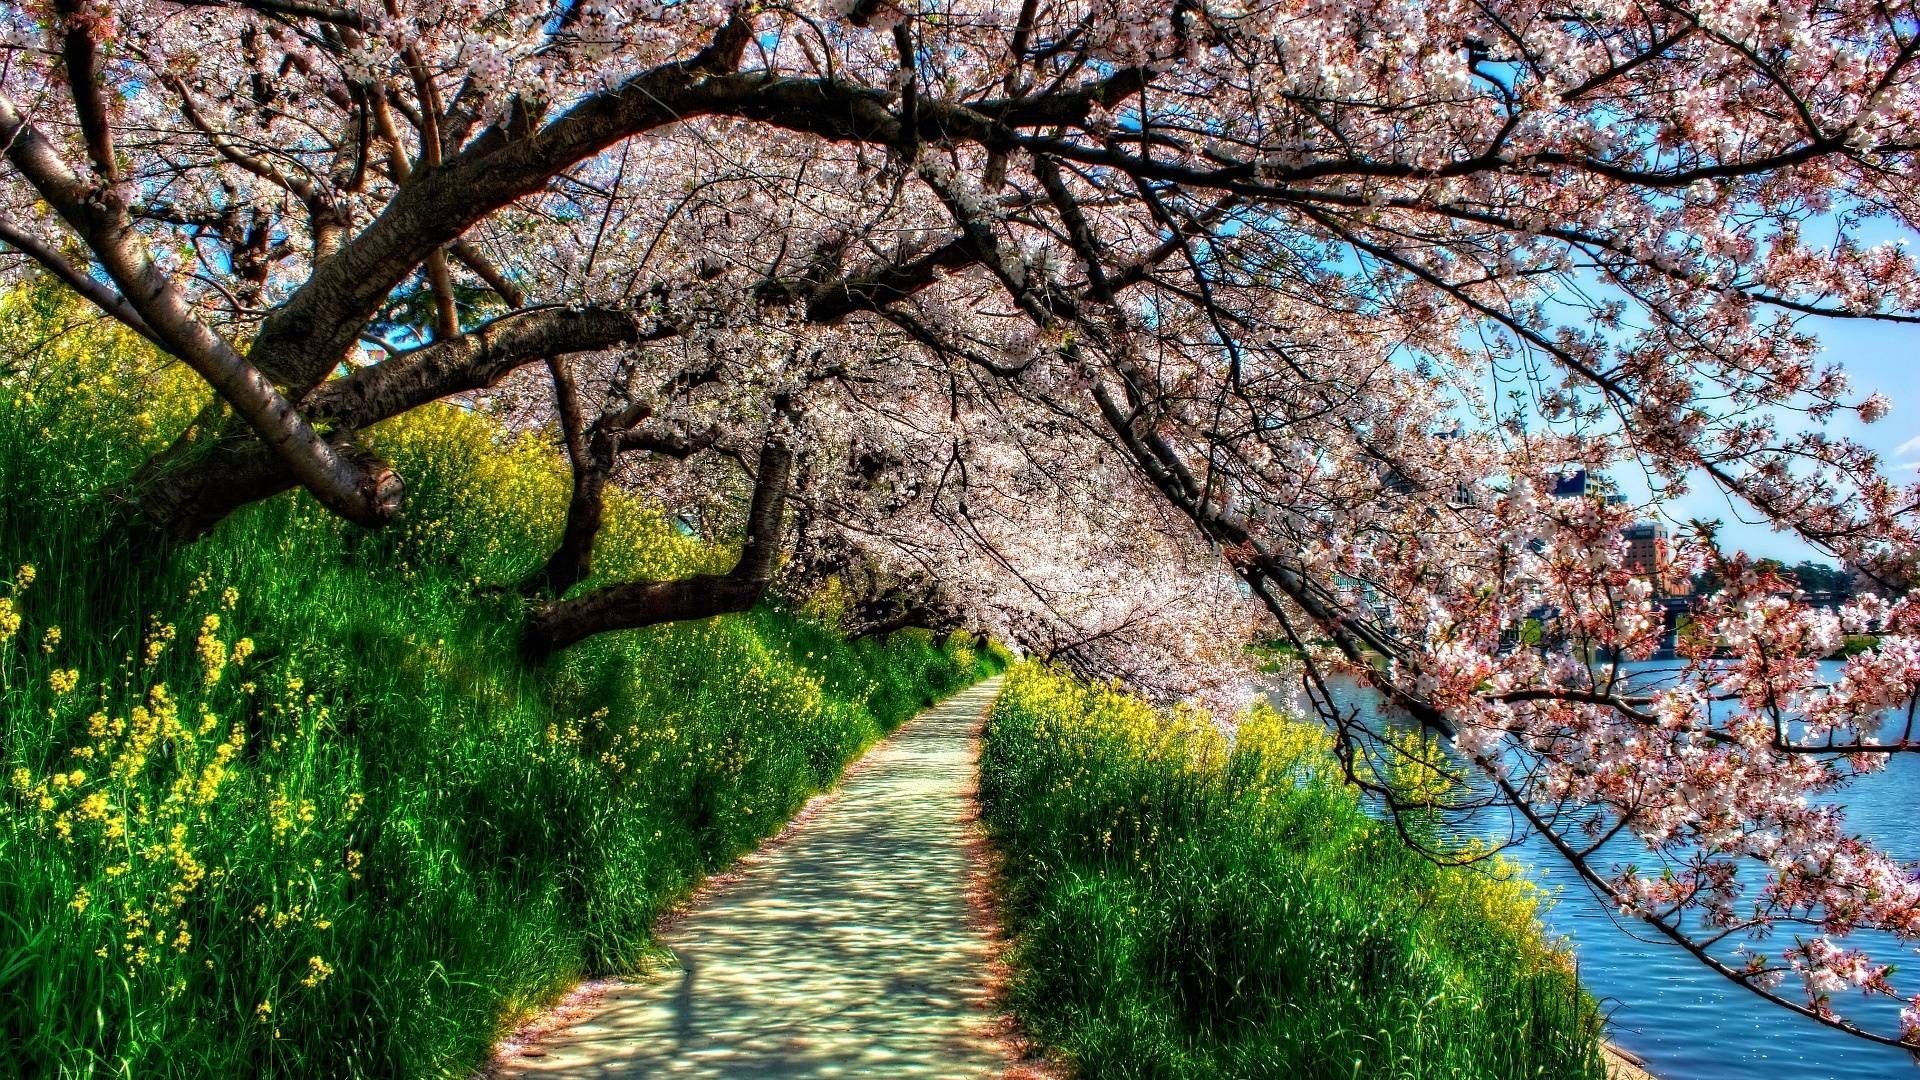 64 Hd Spring Wallpapers on WallpaperPlay 1920x1080